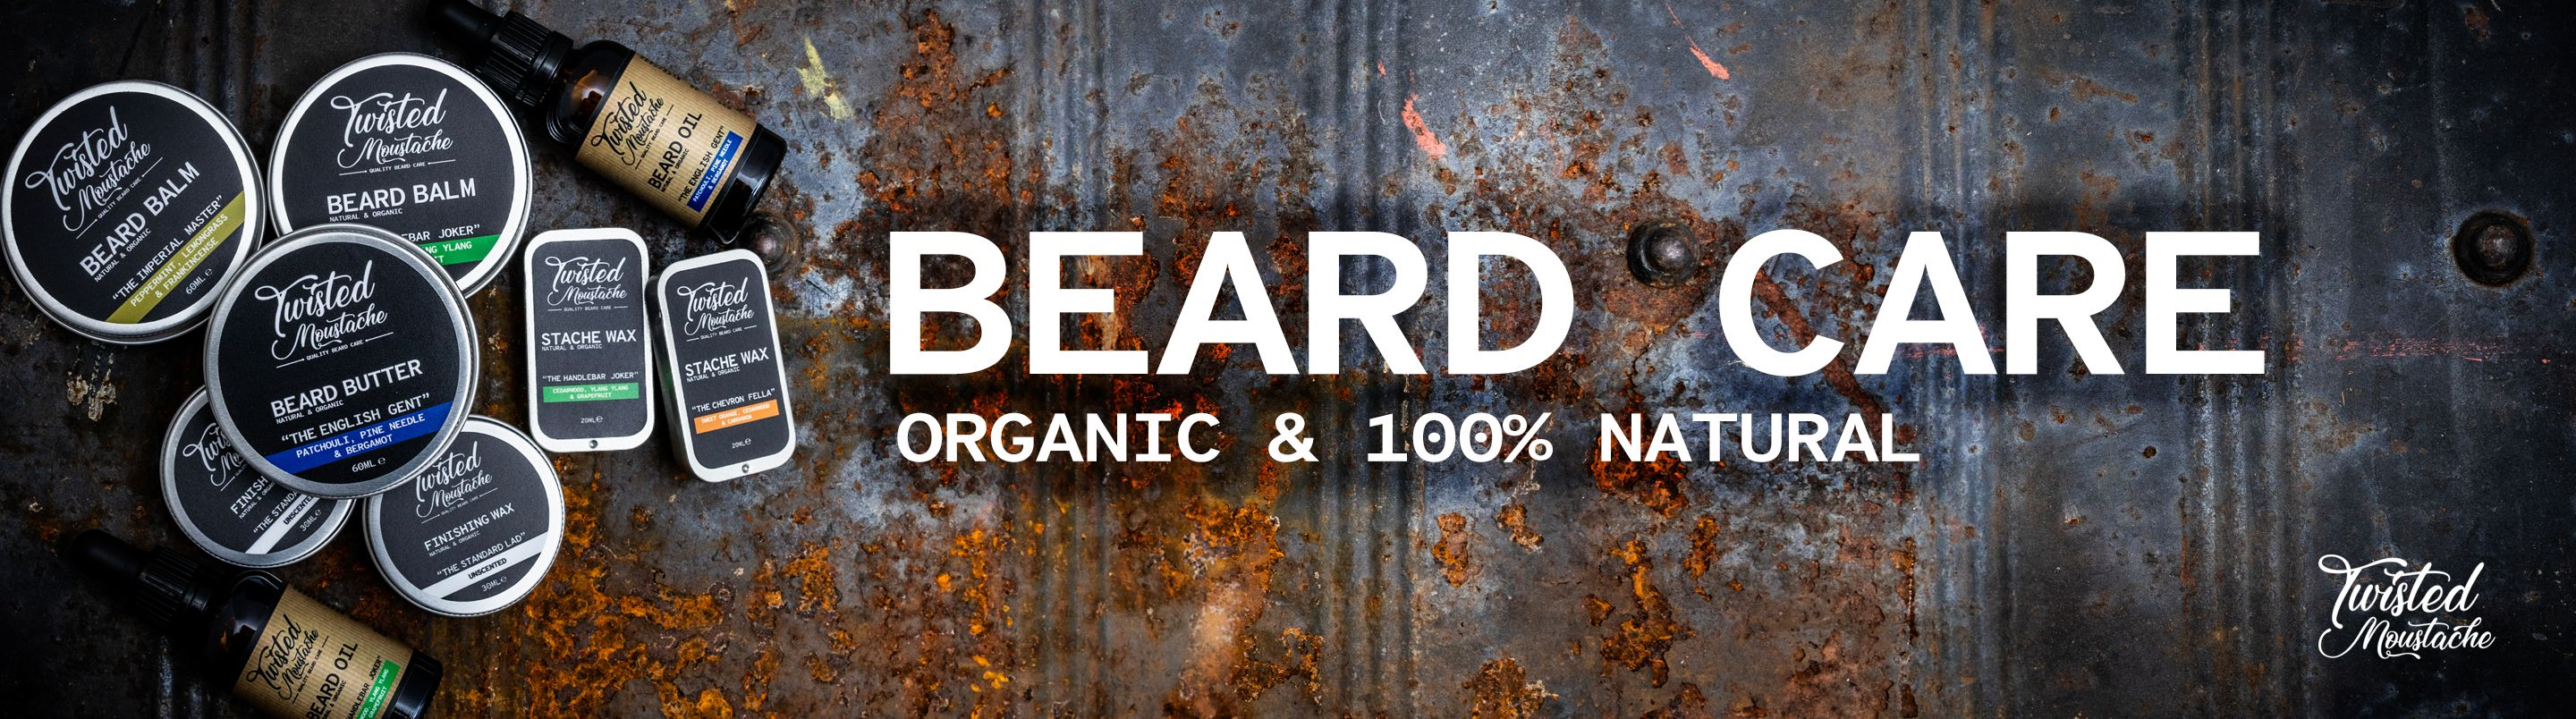 The very best Beard Care available in the UK